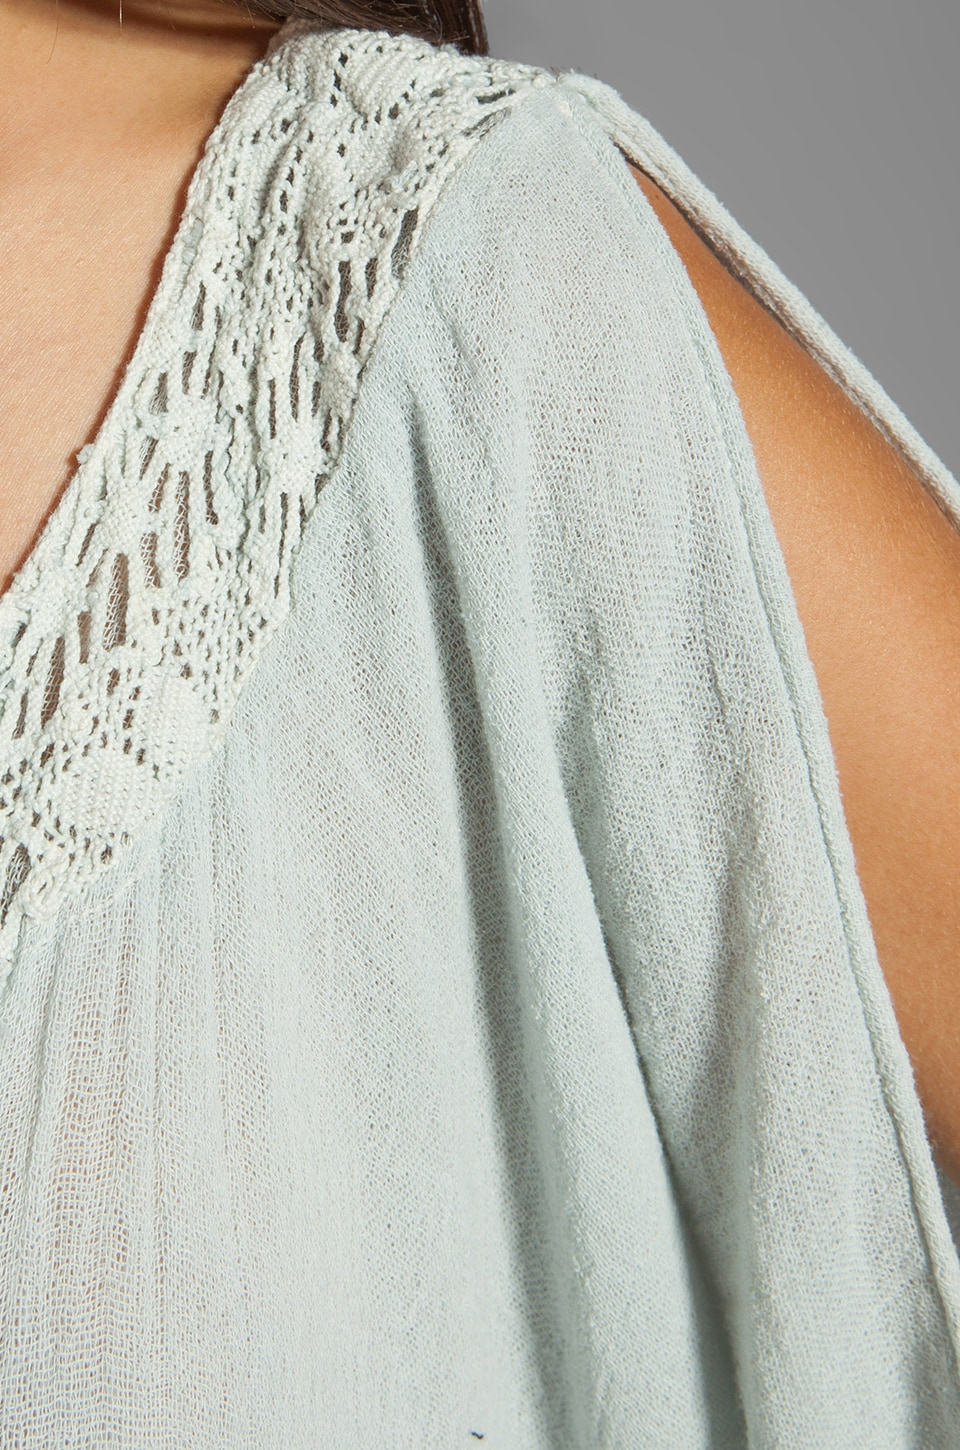 Jen's Pirate Booty Lace Tabasco Top in Silver